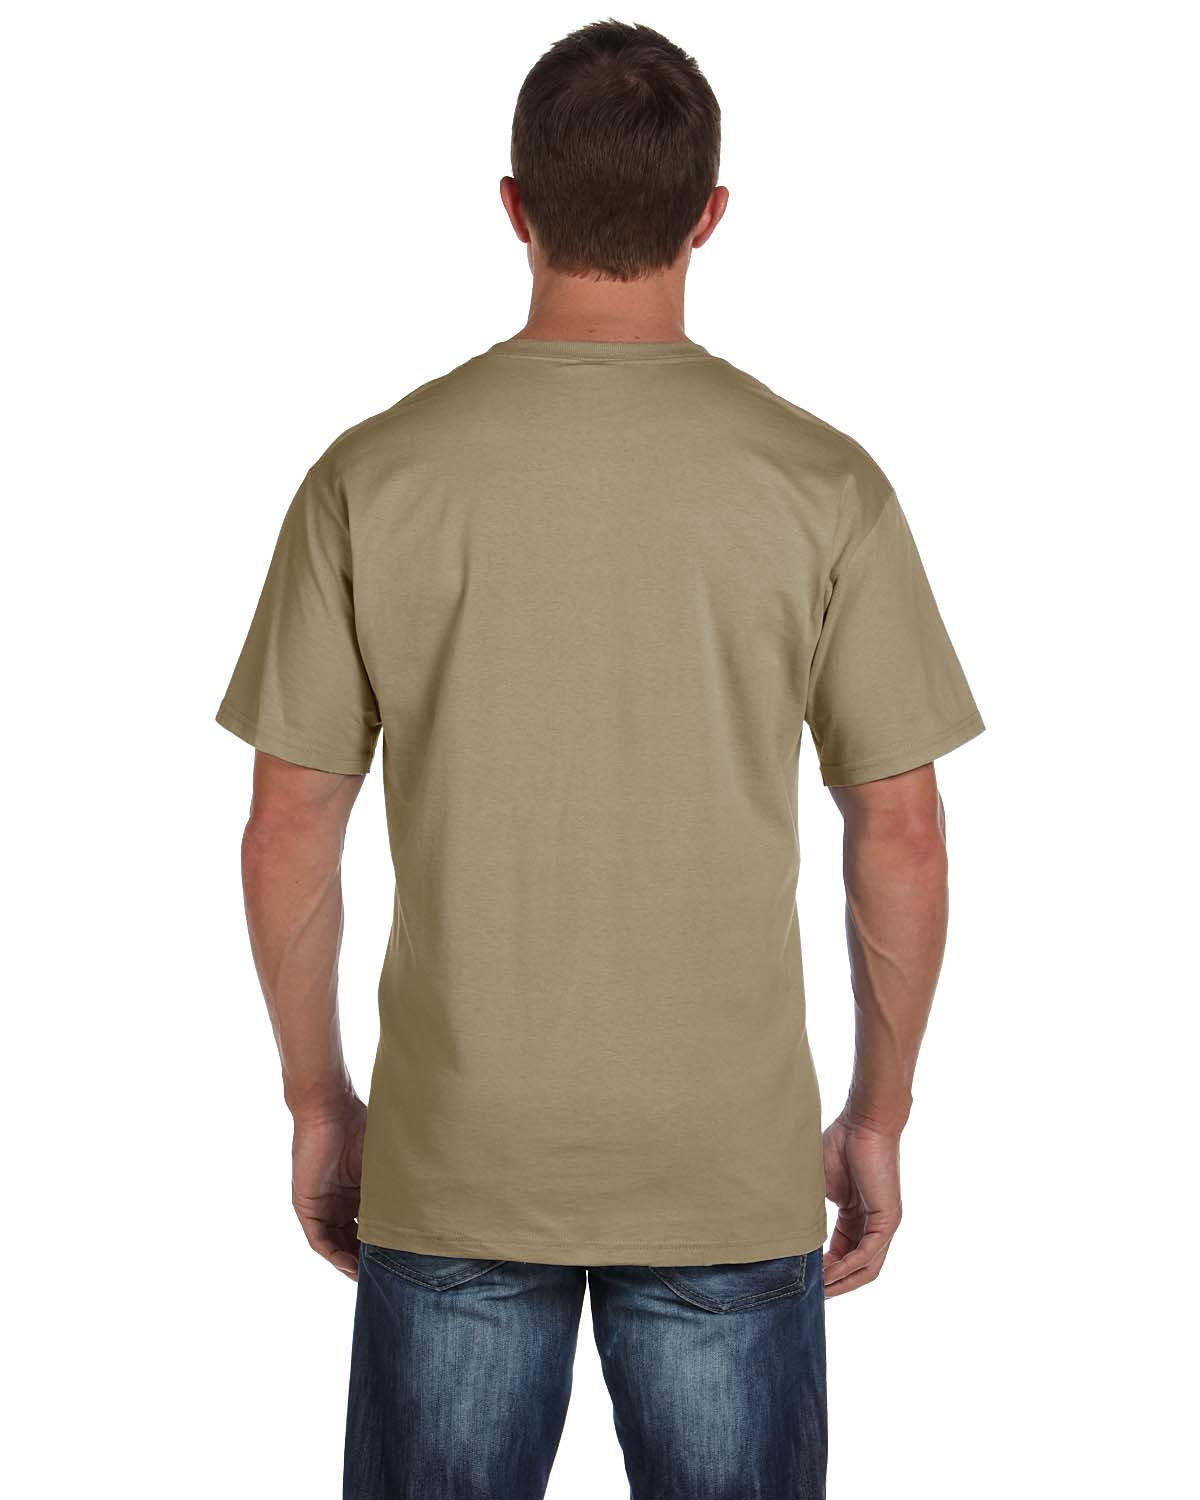 Fruit of the loom men 39 s 5 oz 100 heavy cotton pocket s for Fruits of the loom t shirts